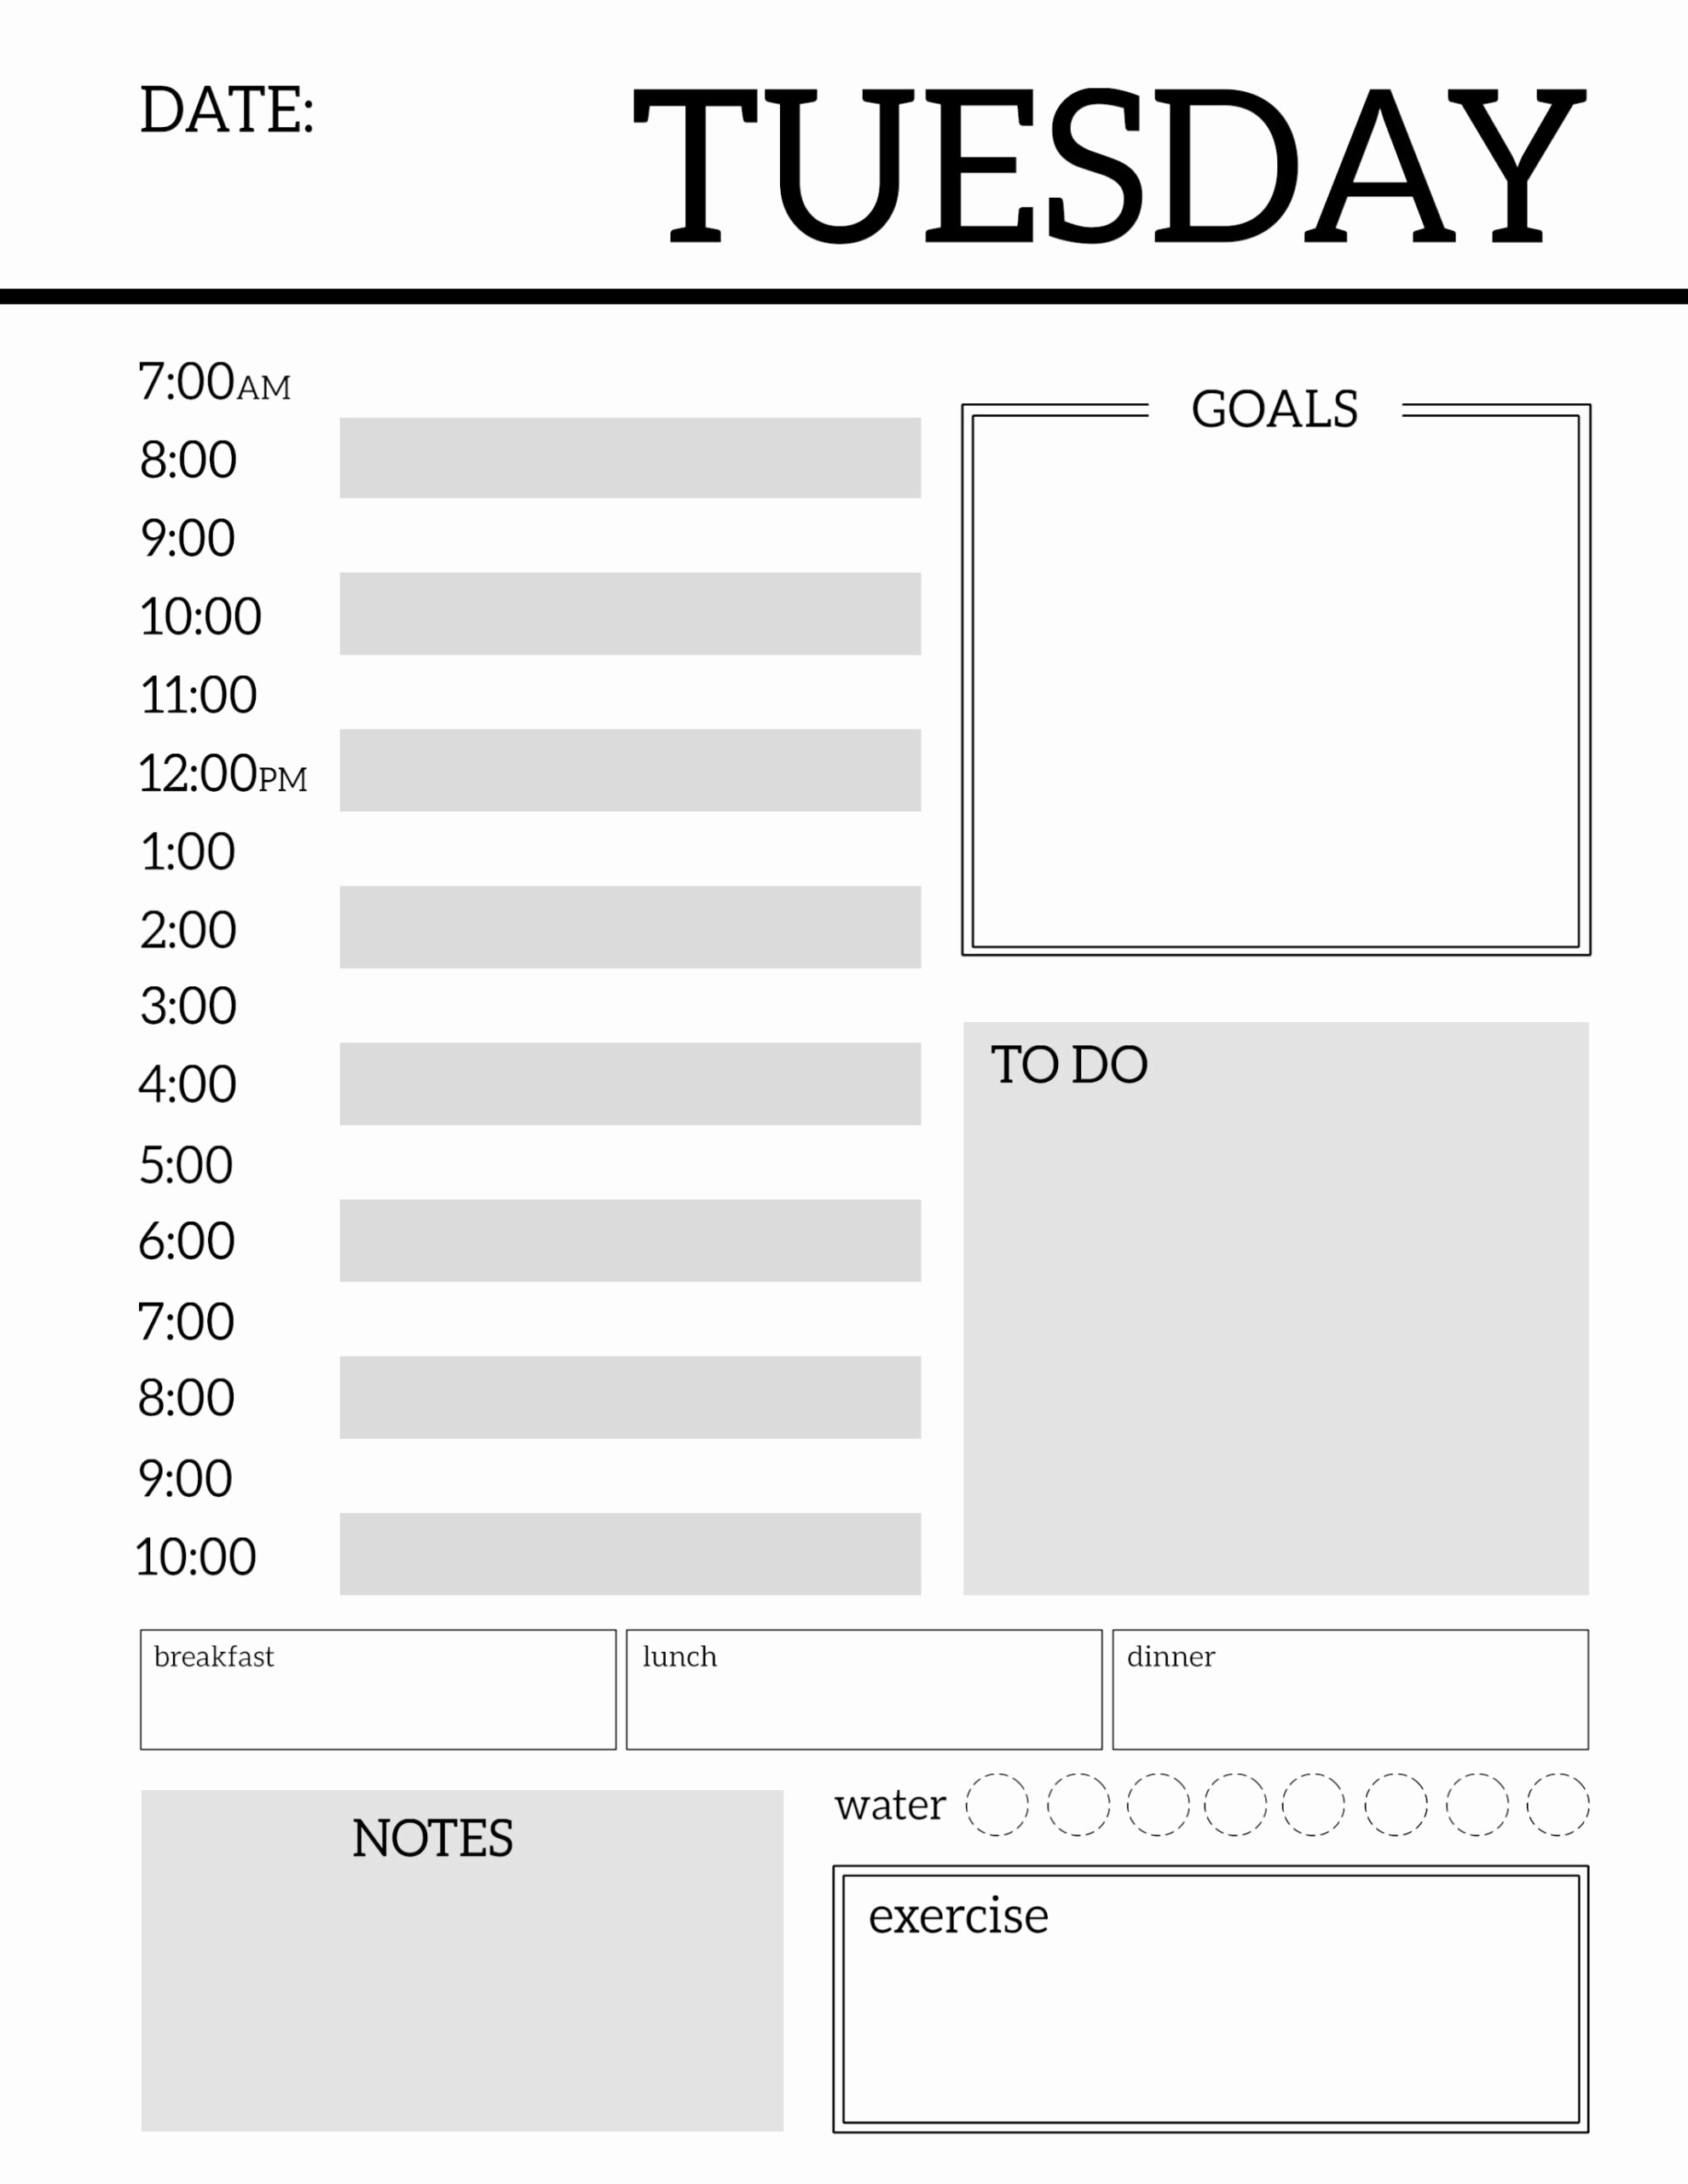 Printable Daily Planner Template New Daily Planner Printable Template Sheets Paper Trail Design